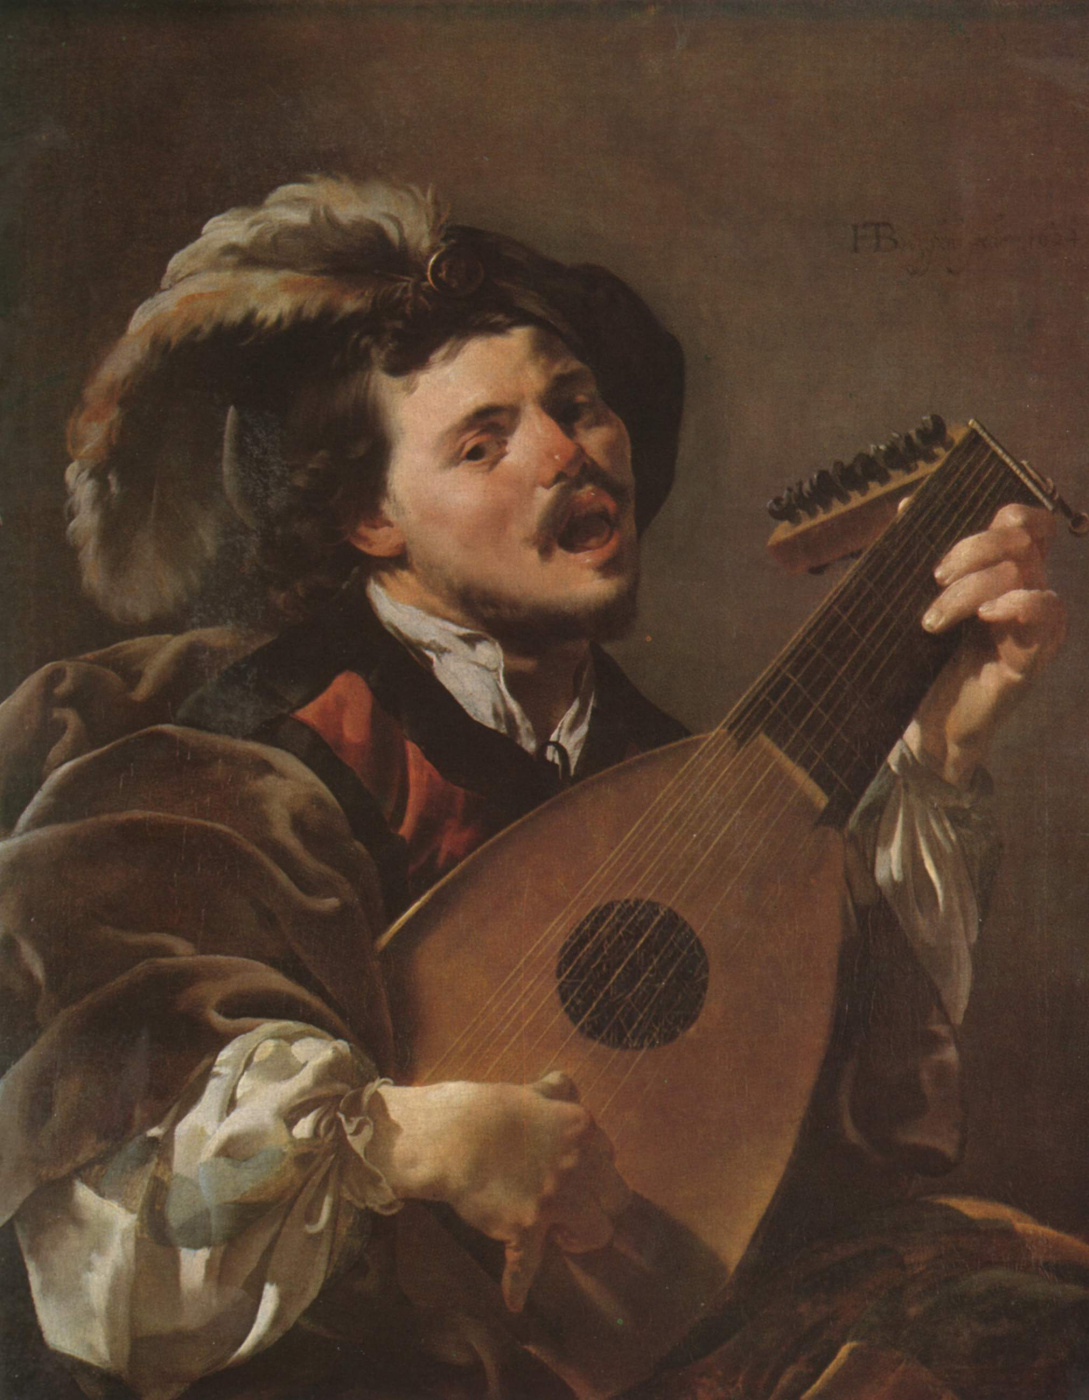 Hendrick Jansz Terbrugghen. The man playing the lute and singing